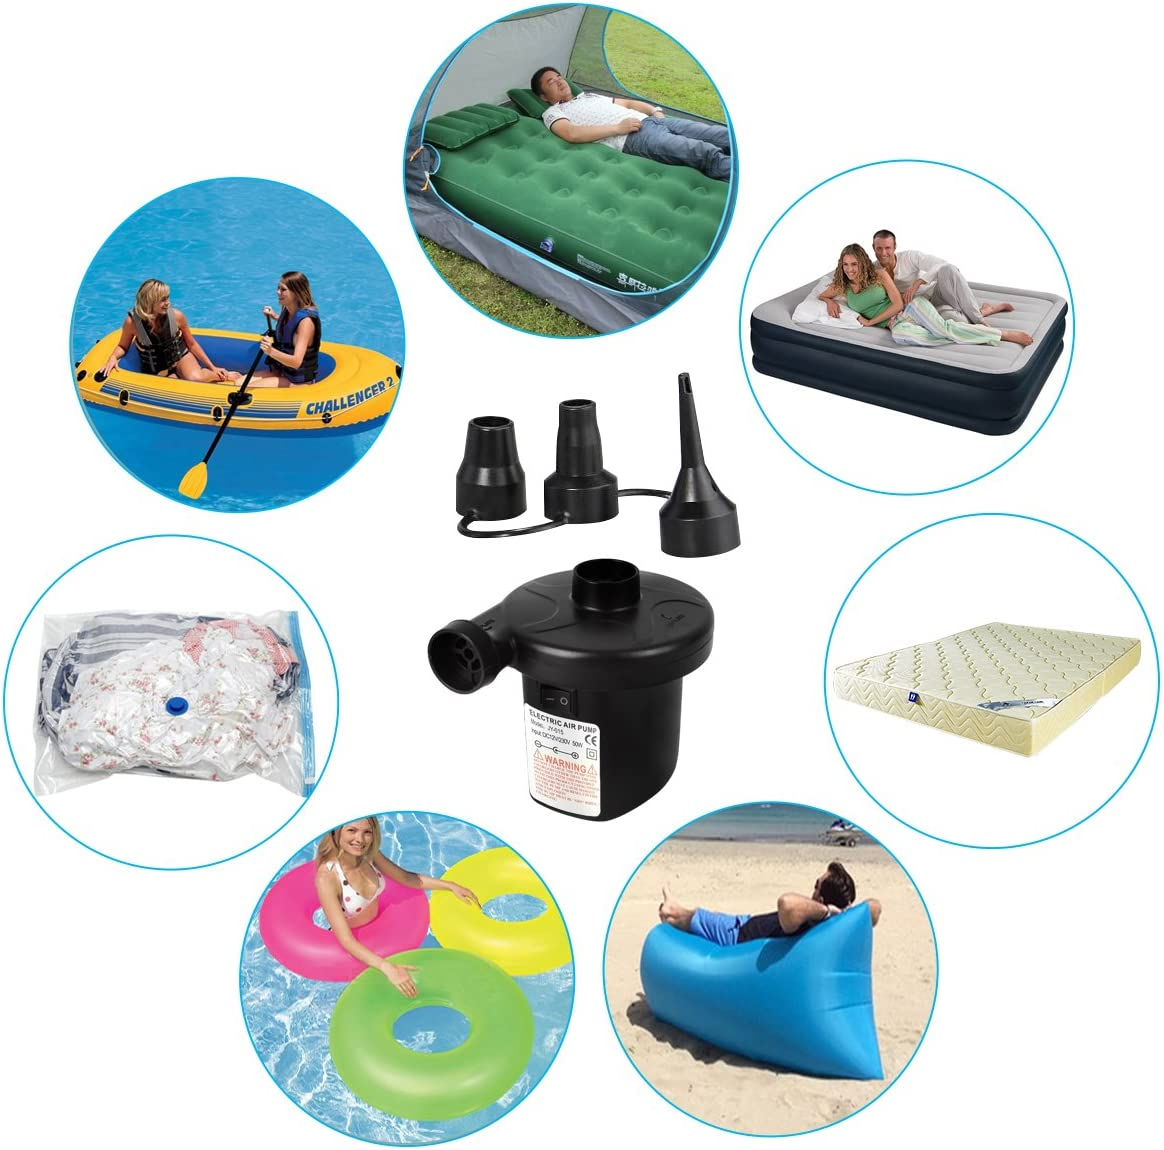 Omont Electric Quick-Fill Air Pump 110V AC/12V DC Portable Inflator Air Mattress Pump for Inflatable Air Bed Lake Floats Rafts Pool Toys: Home Improvement